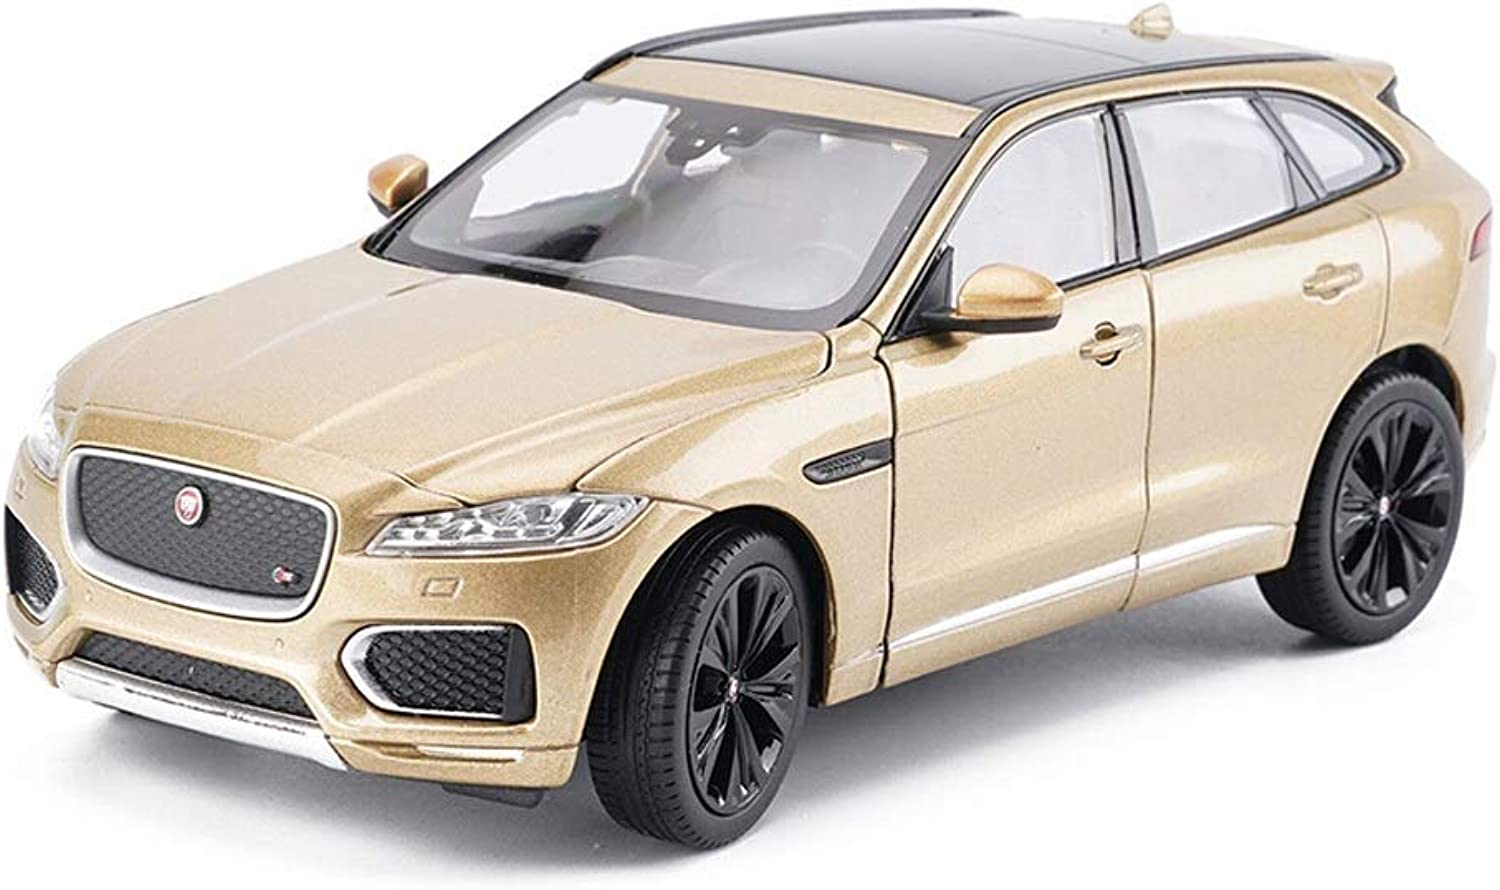 MUYB Car Model Die Casting Car 1 24 Jaguar FPACE Offroad Vehicle Simulation Alloy Diecasting Toy Ornaments Sports Car Collection Jewelry 18x7x6CM (color   gold)